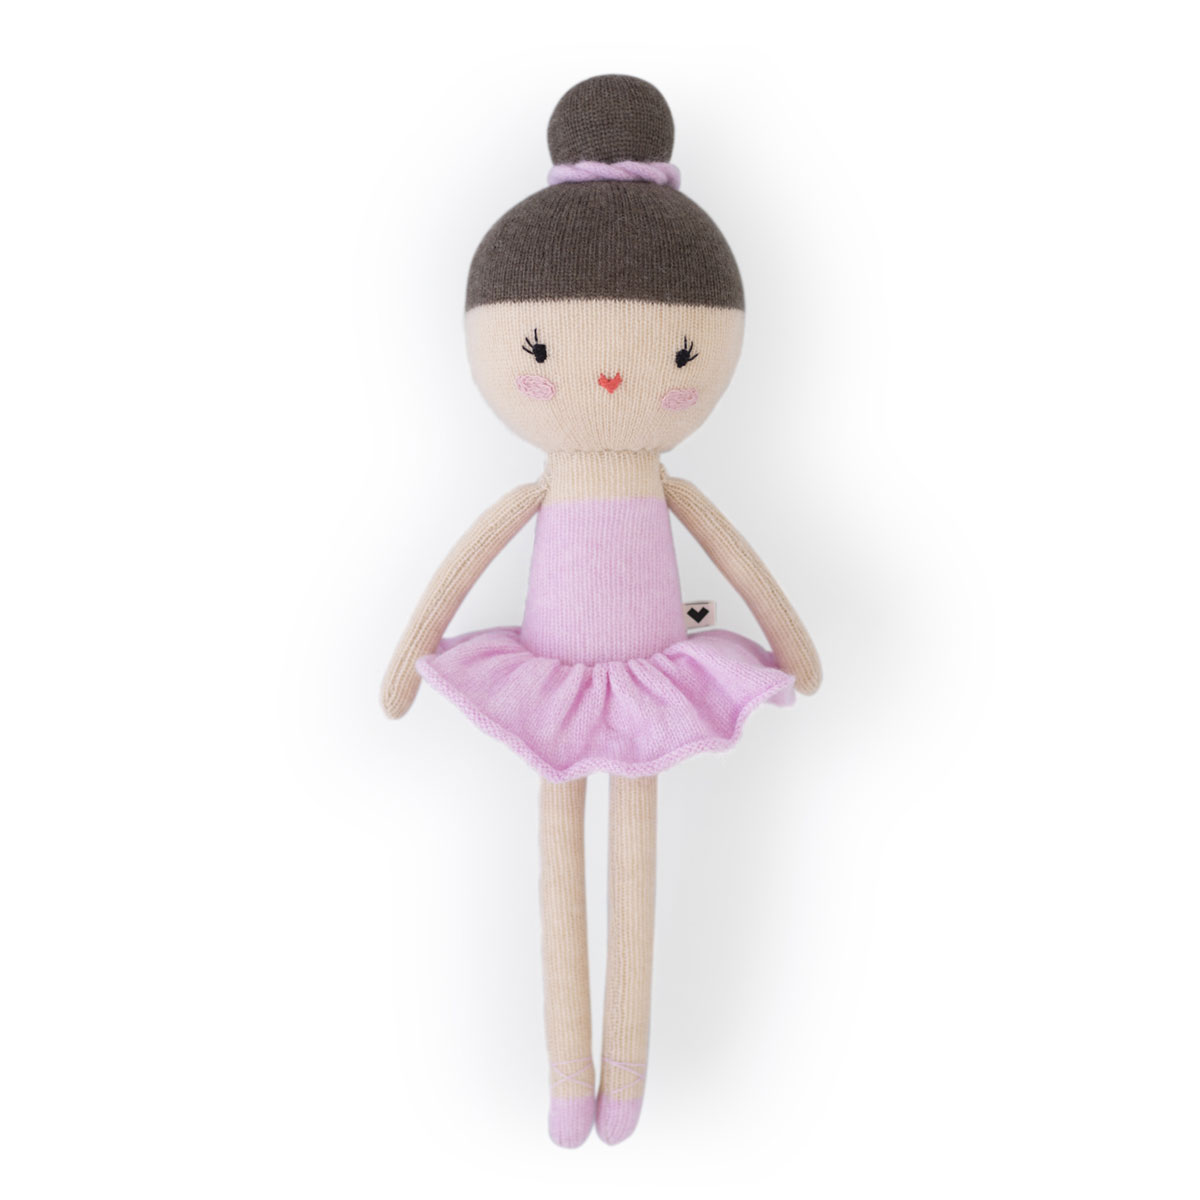 Lauvely Plush Anna Ballerina Doll in Pink